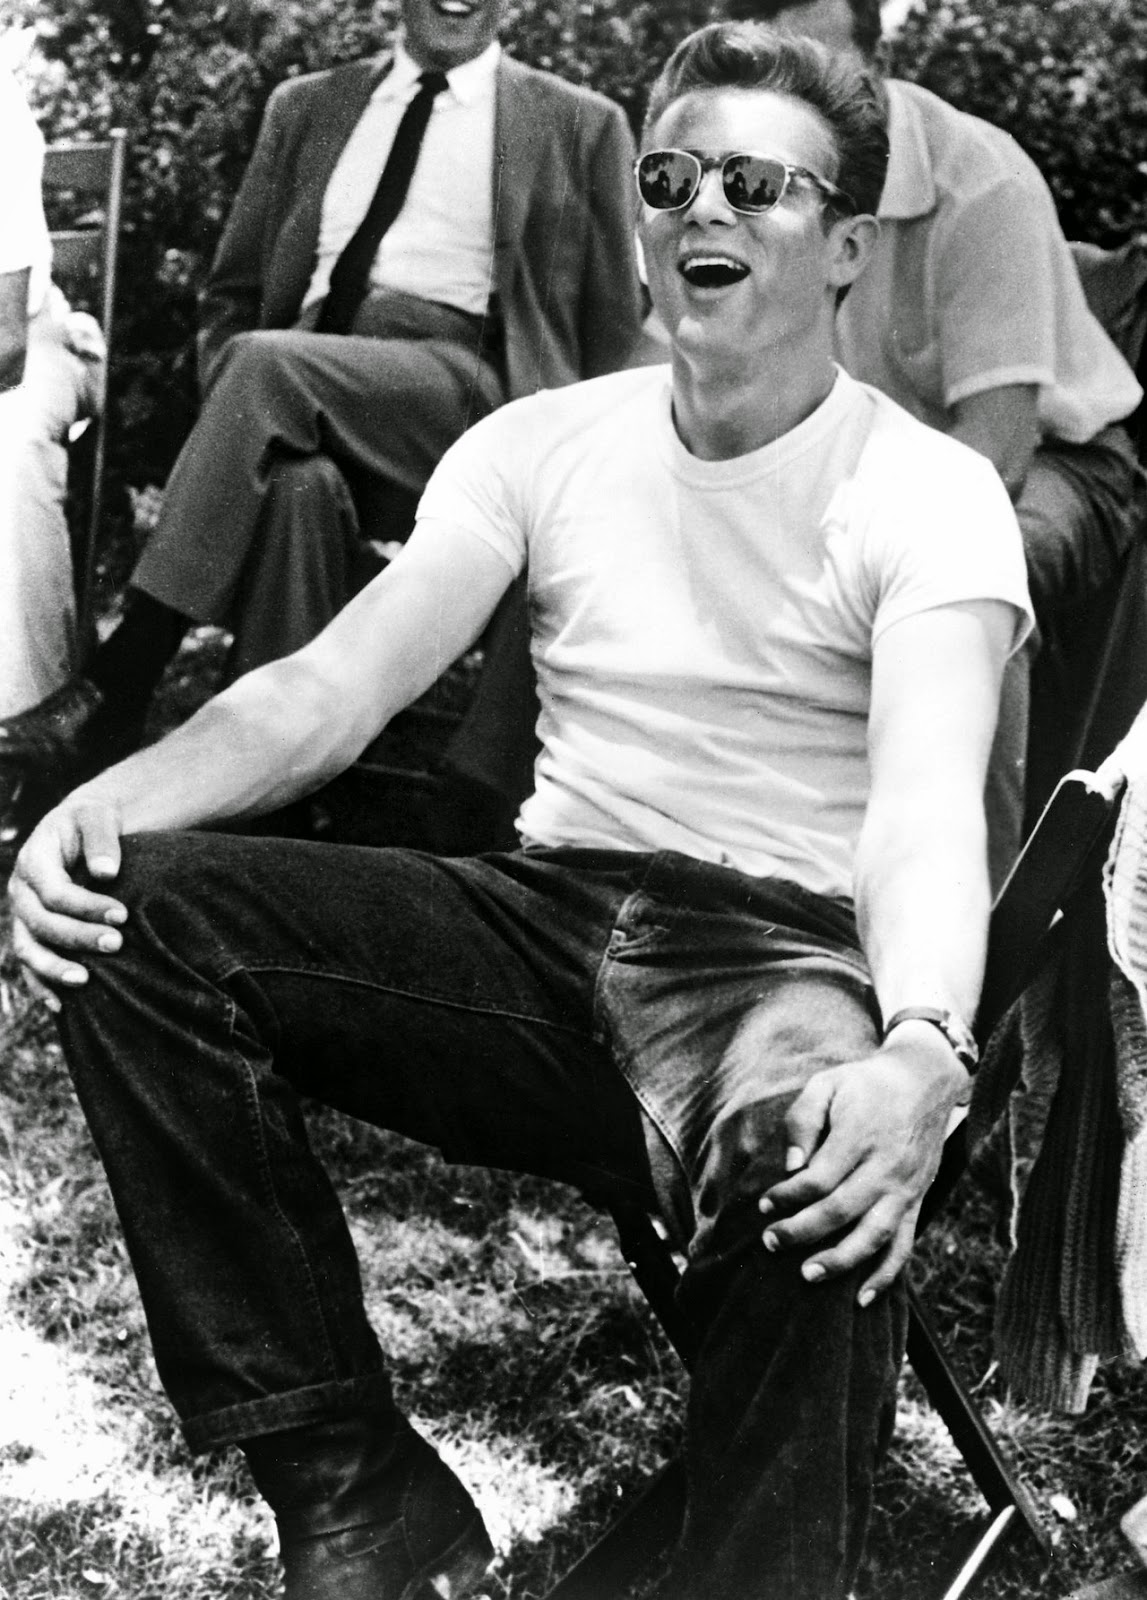 James Dean Rebel Without A Cause James Dean wore his t-shirt